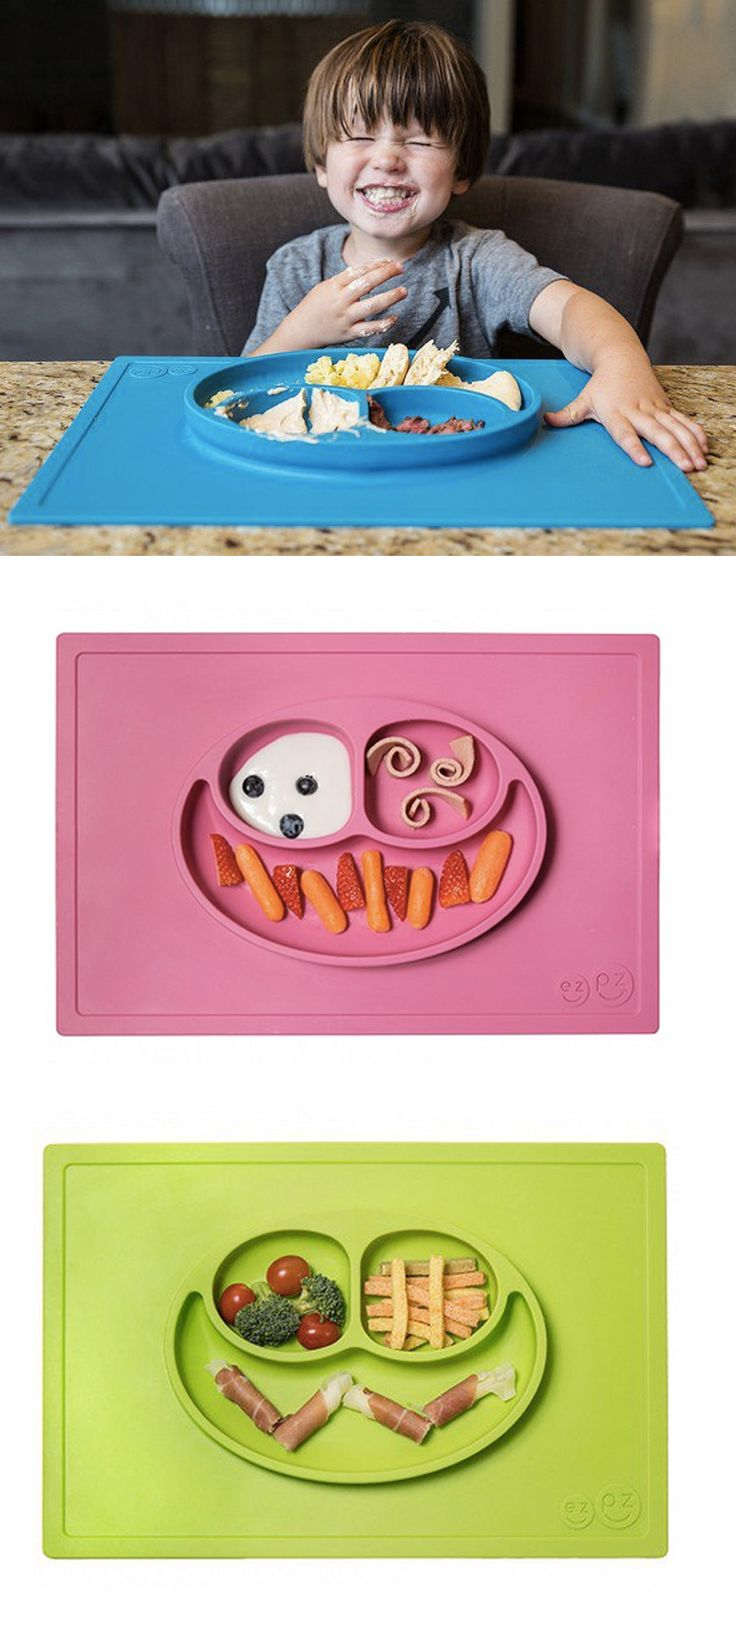 Happy Mat is dishwasher safe, so cleaning is a snap. And if your kid takes a while to eat, the Happy Mat goes right in the microwave. It's FDA-approved, made with a 100% safe silicone. And it stores easily, and doesn't leave marks on surfaces, so it's great on plane trips. You can use it for craft time, too.